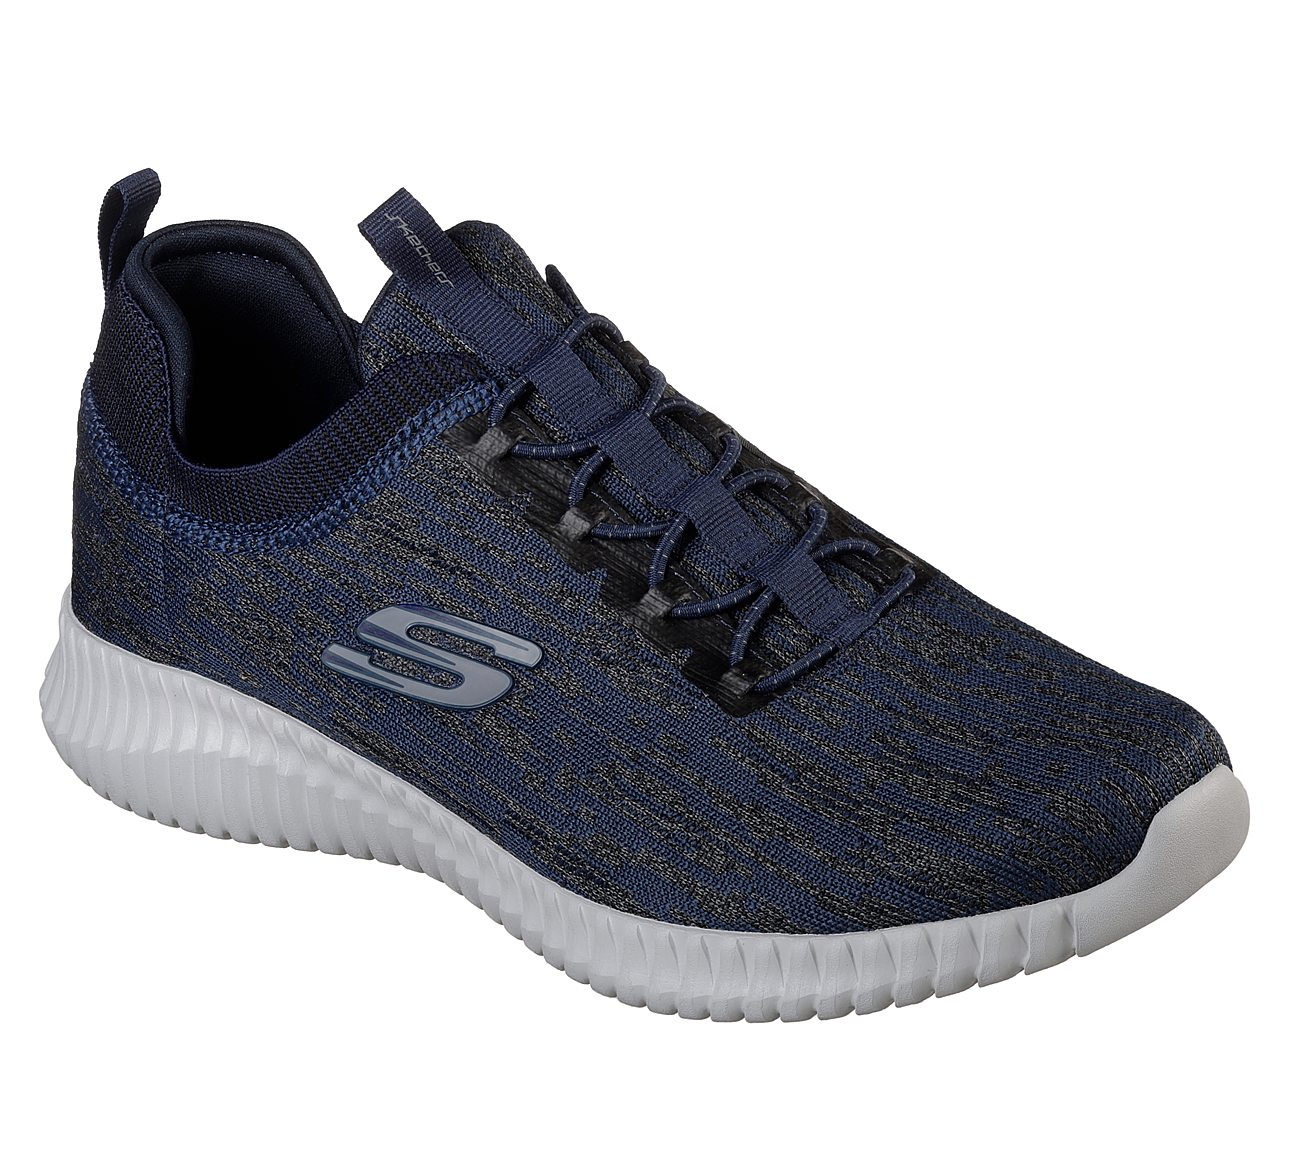 Skechers Go Flex Walk Running Shoes (Navy)